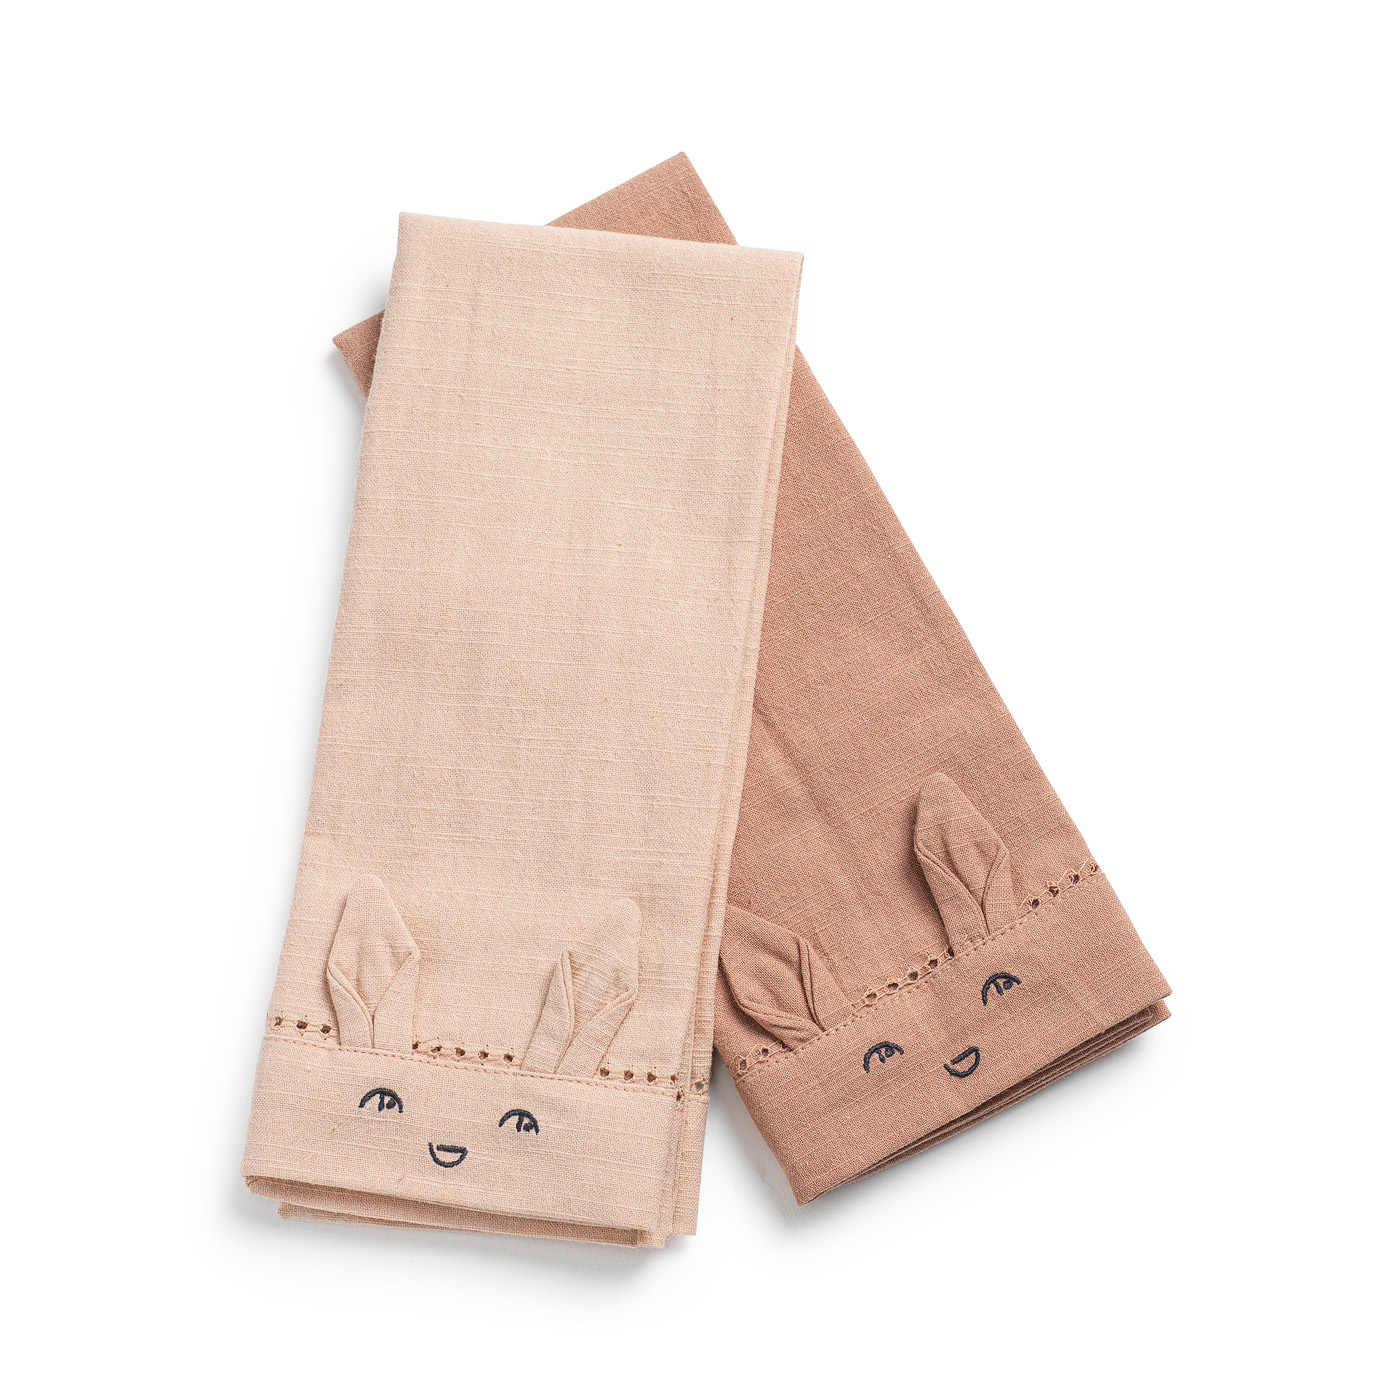 Napkins 2 pieces - Faded Rose/Powder Pink